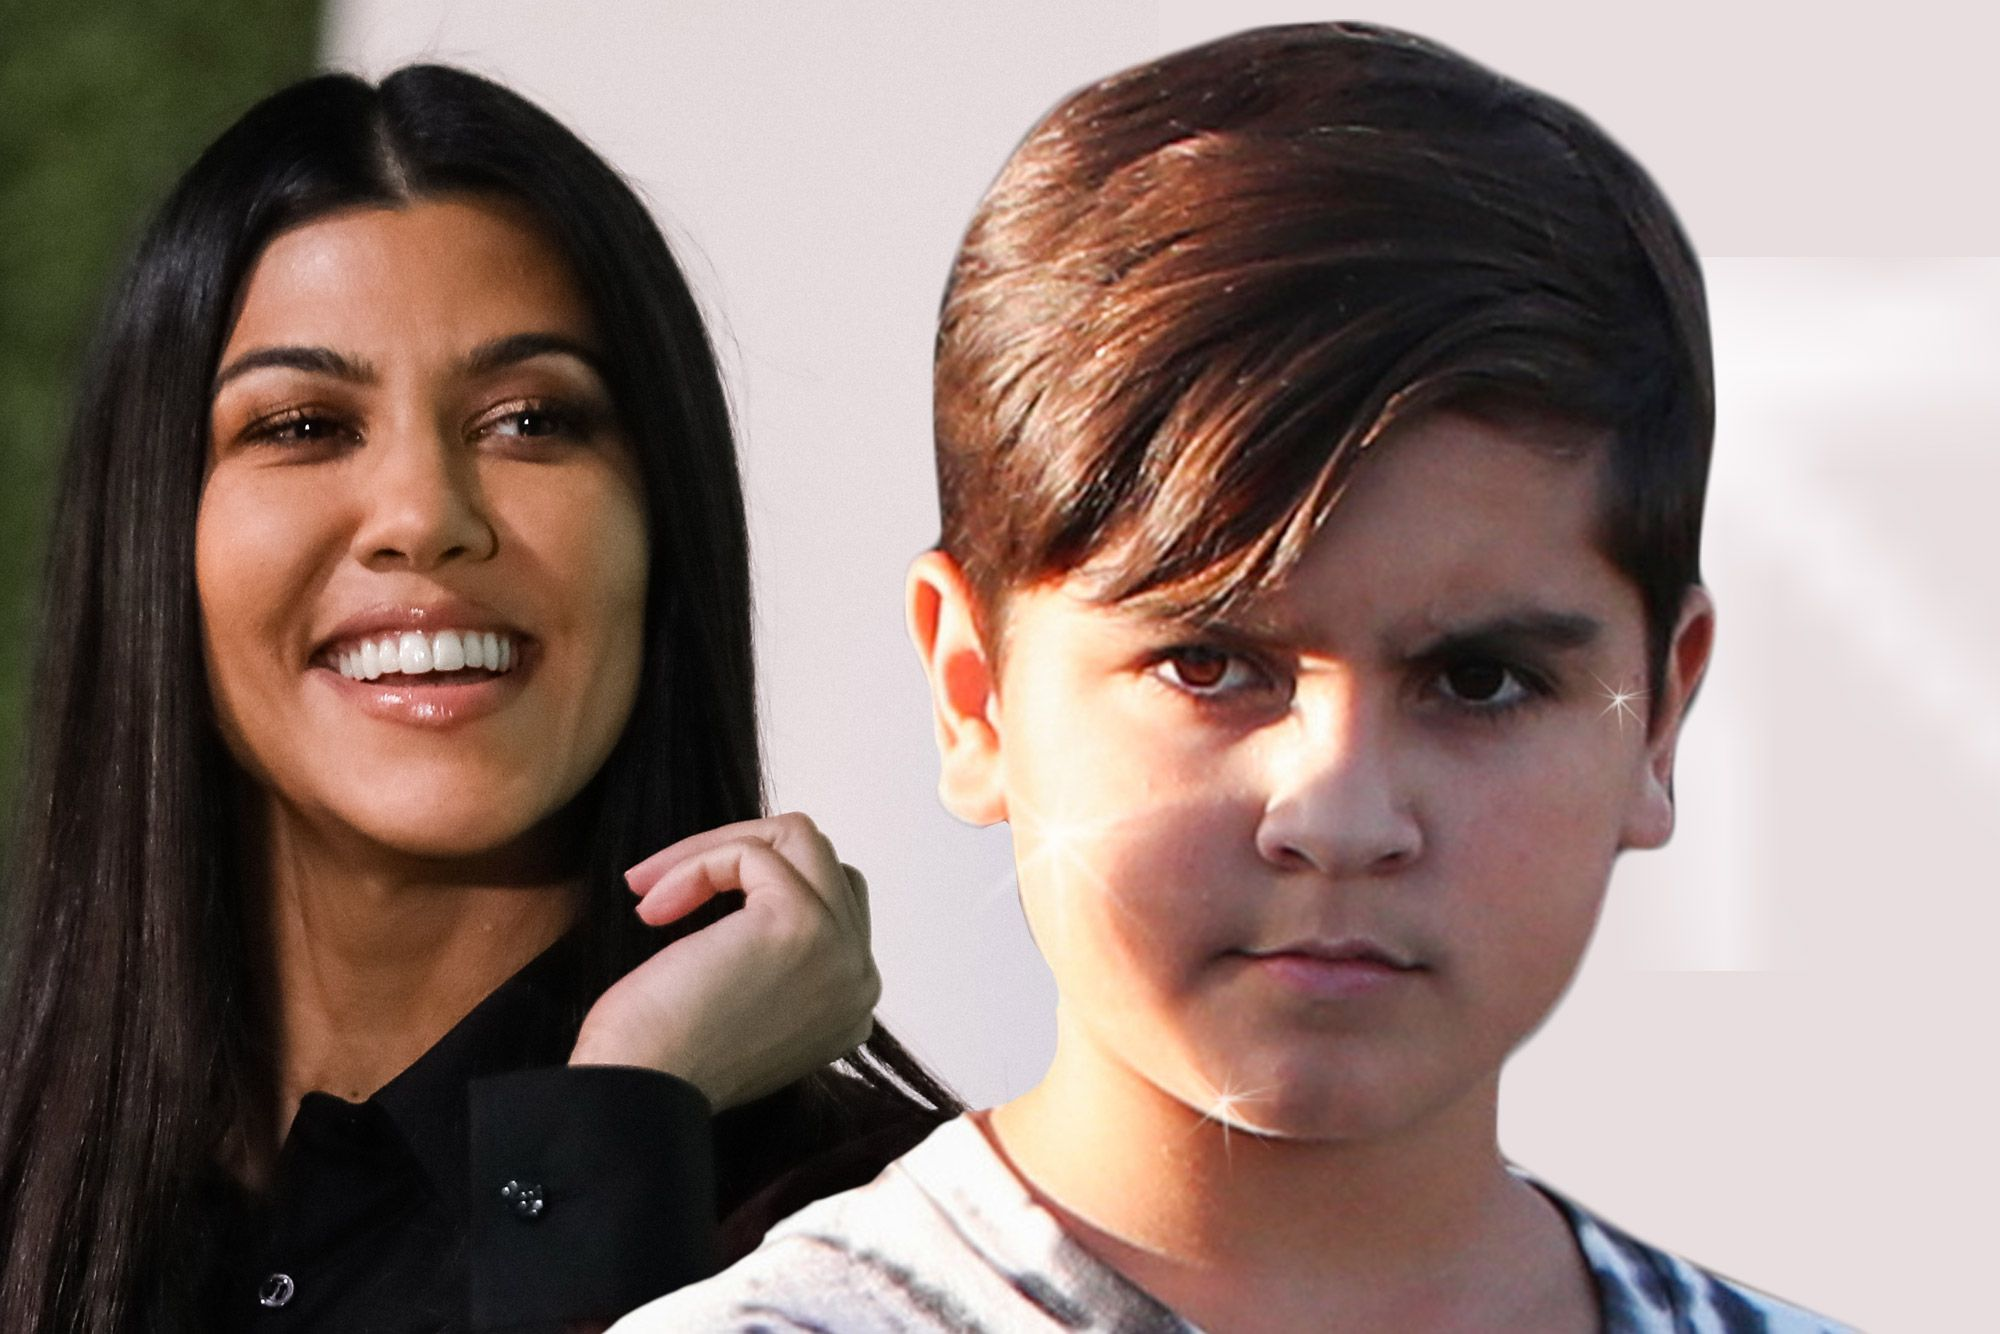 Mason Disick Uses TikTok After Kourtney Kardashian Bans His Instagram